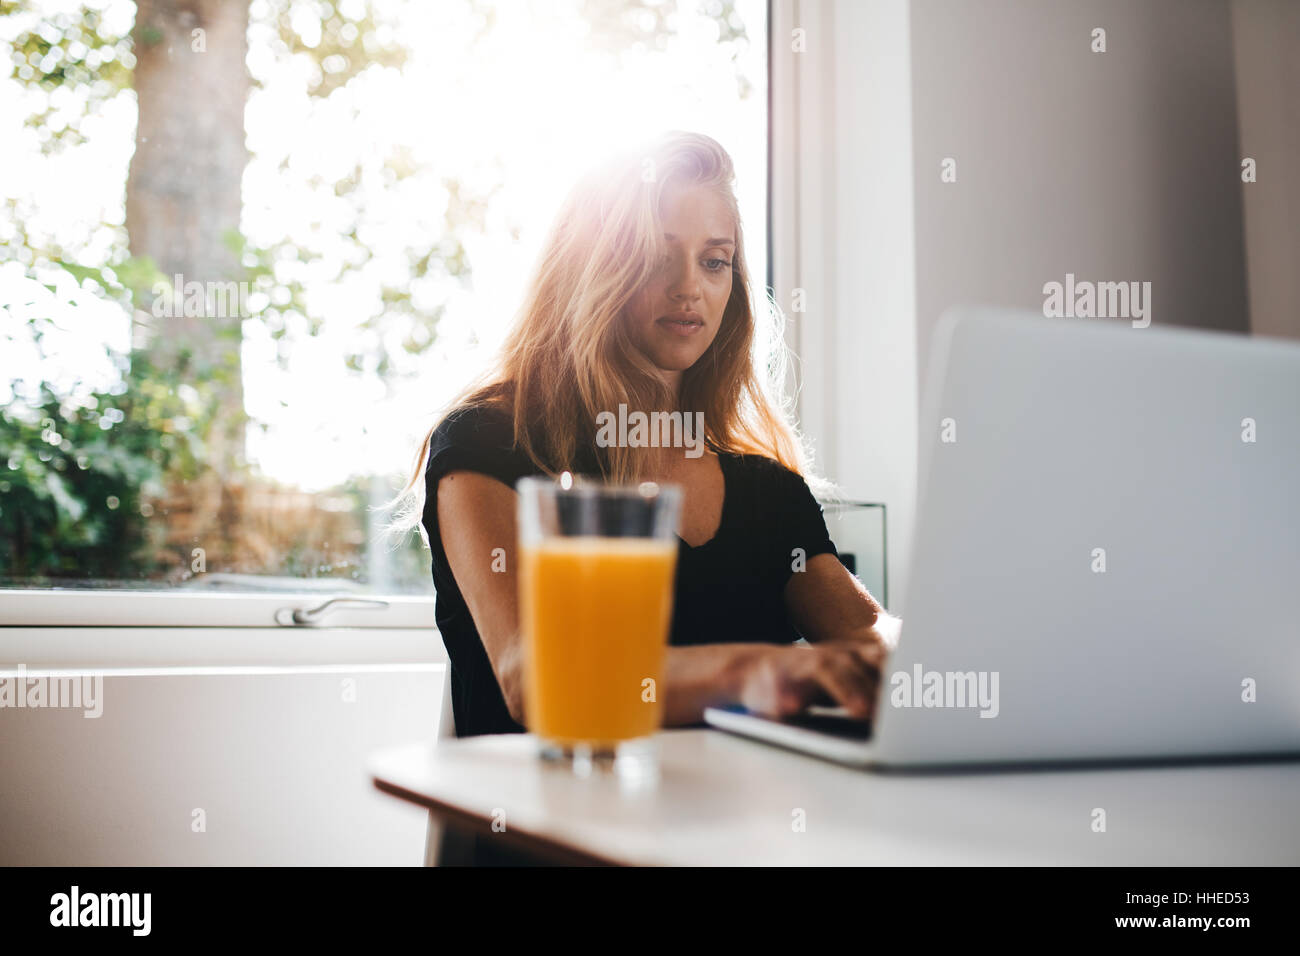 Indoor shot of female working on laptop. Woman in morning sitting in kitchen and using laptop computer. - Stock Image